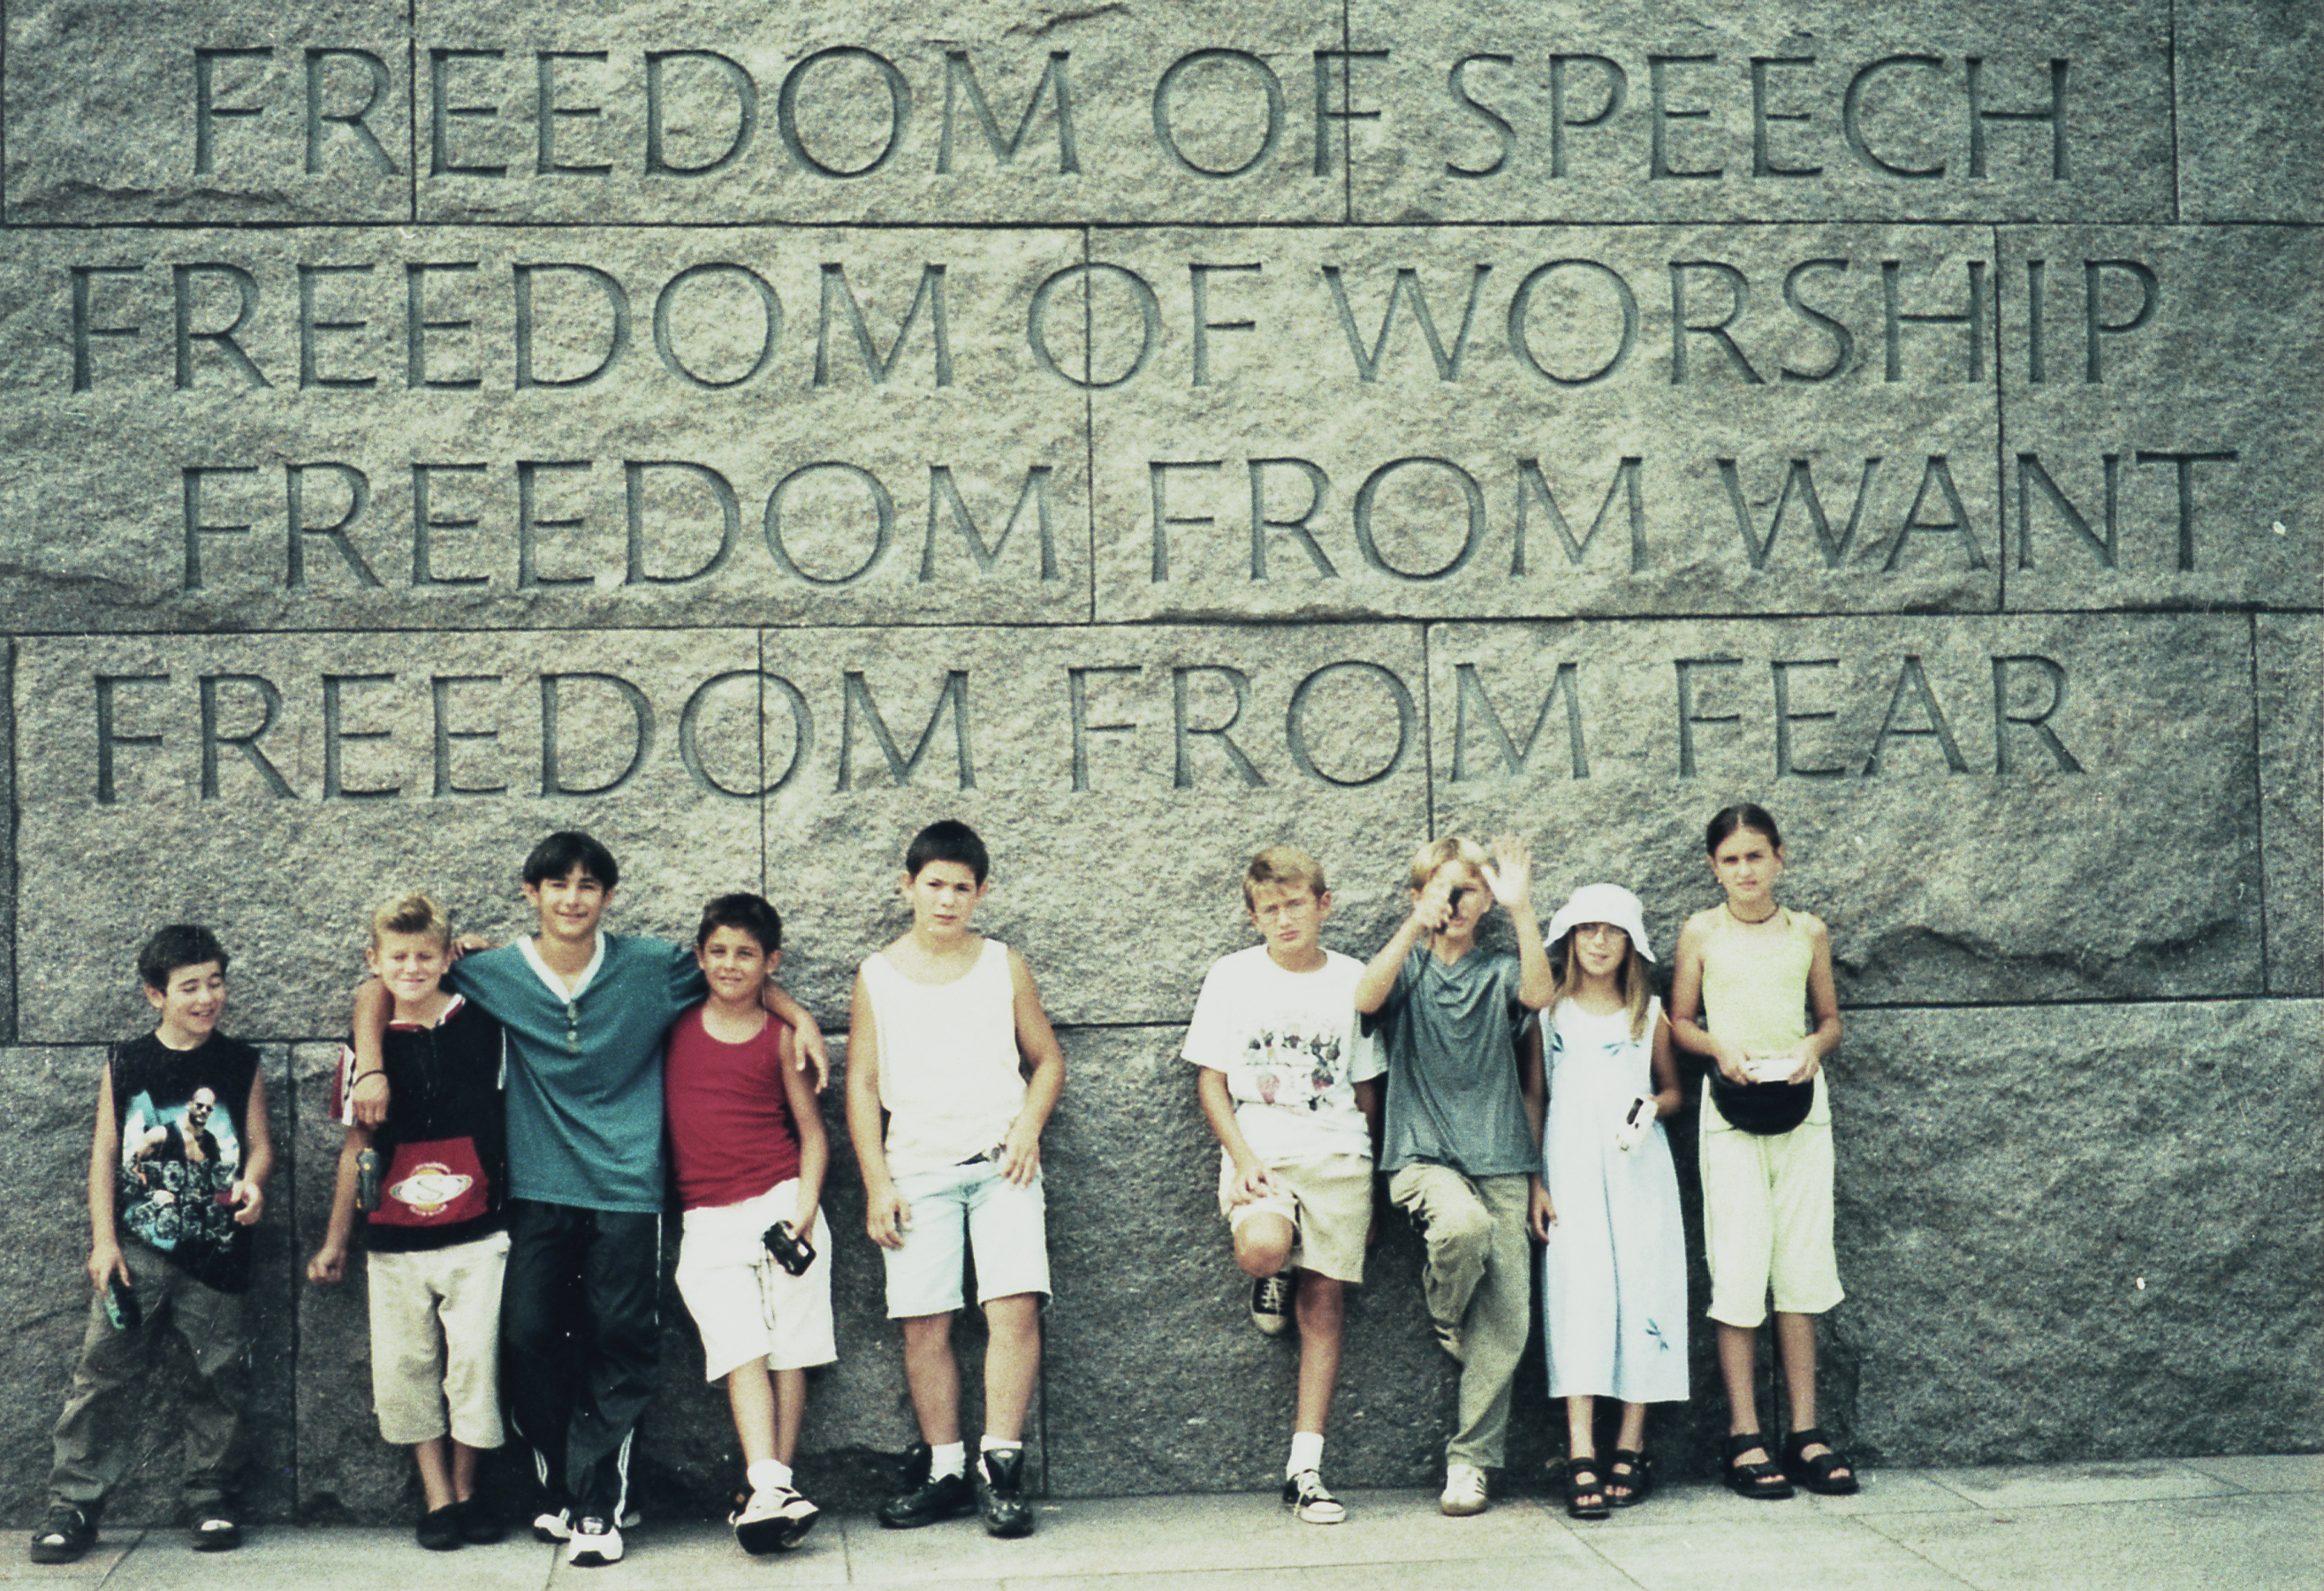 PL Main page 4 Freedoms.jpg